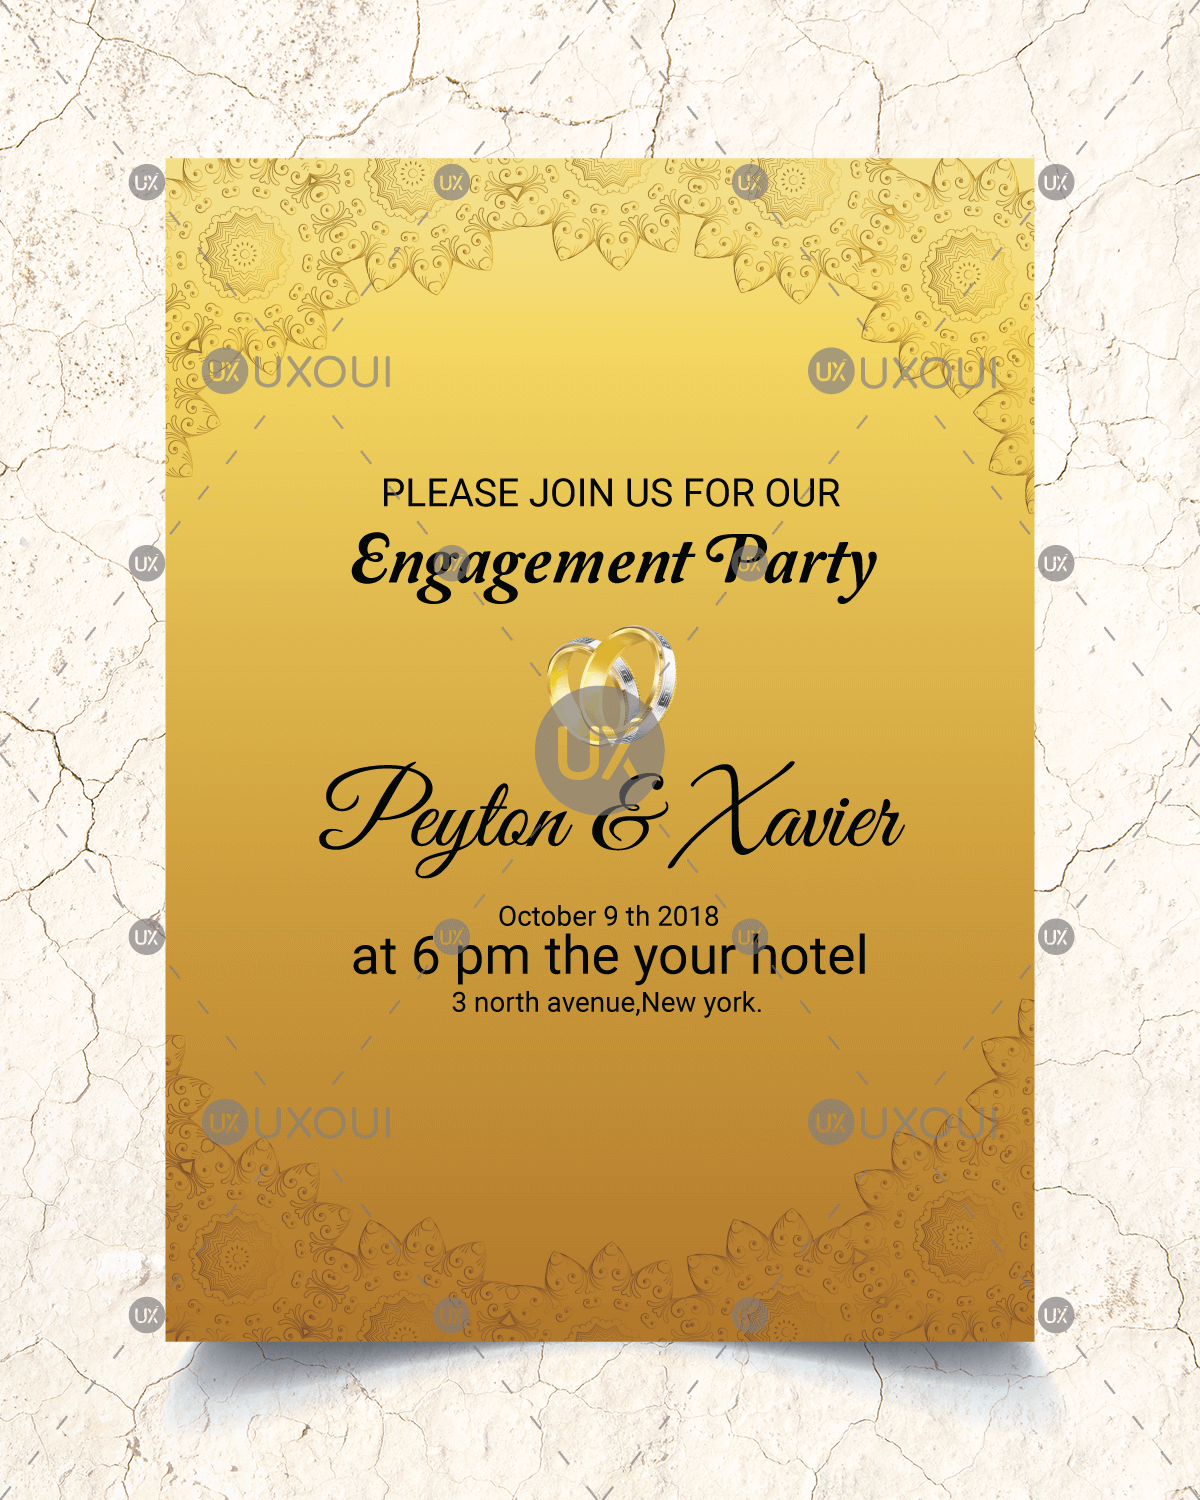 Golden wedding engagement party invitation card template design ...